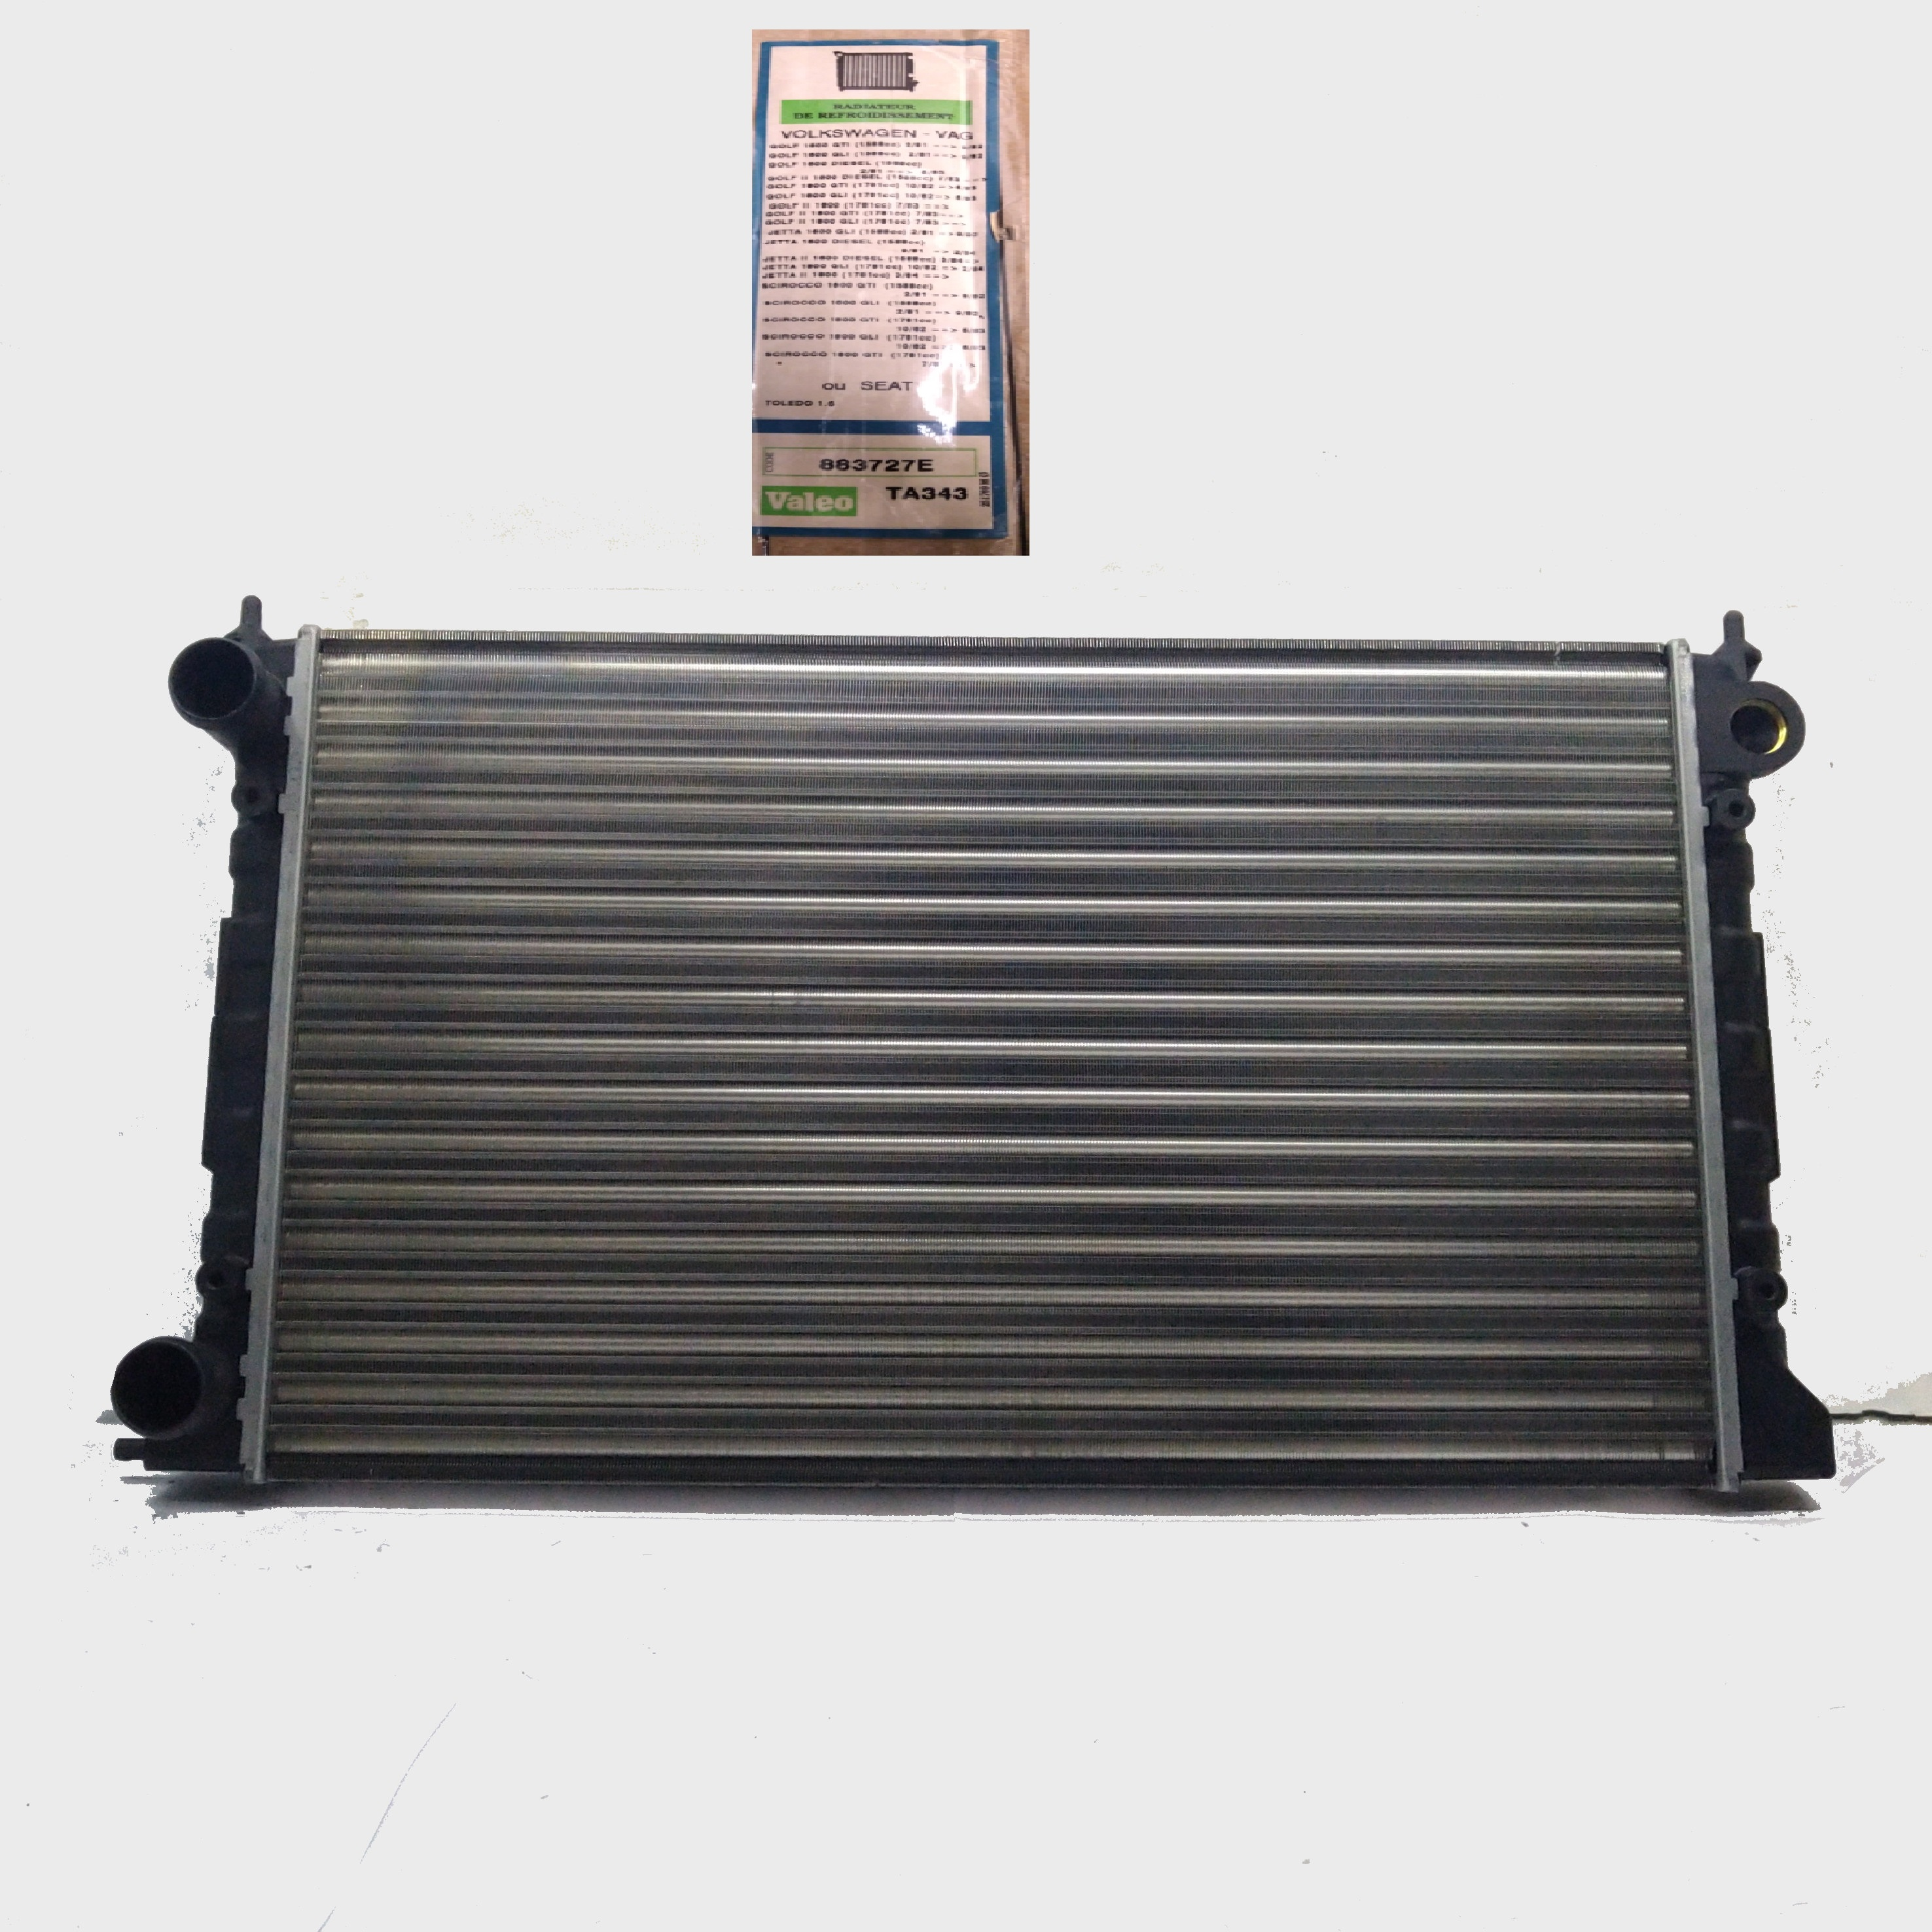 VW GOLF - JETTA - SCIROCCO VALEO ENGINE COOLING RADIATOR FOR 1L0121253B